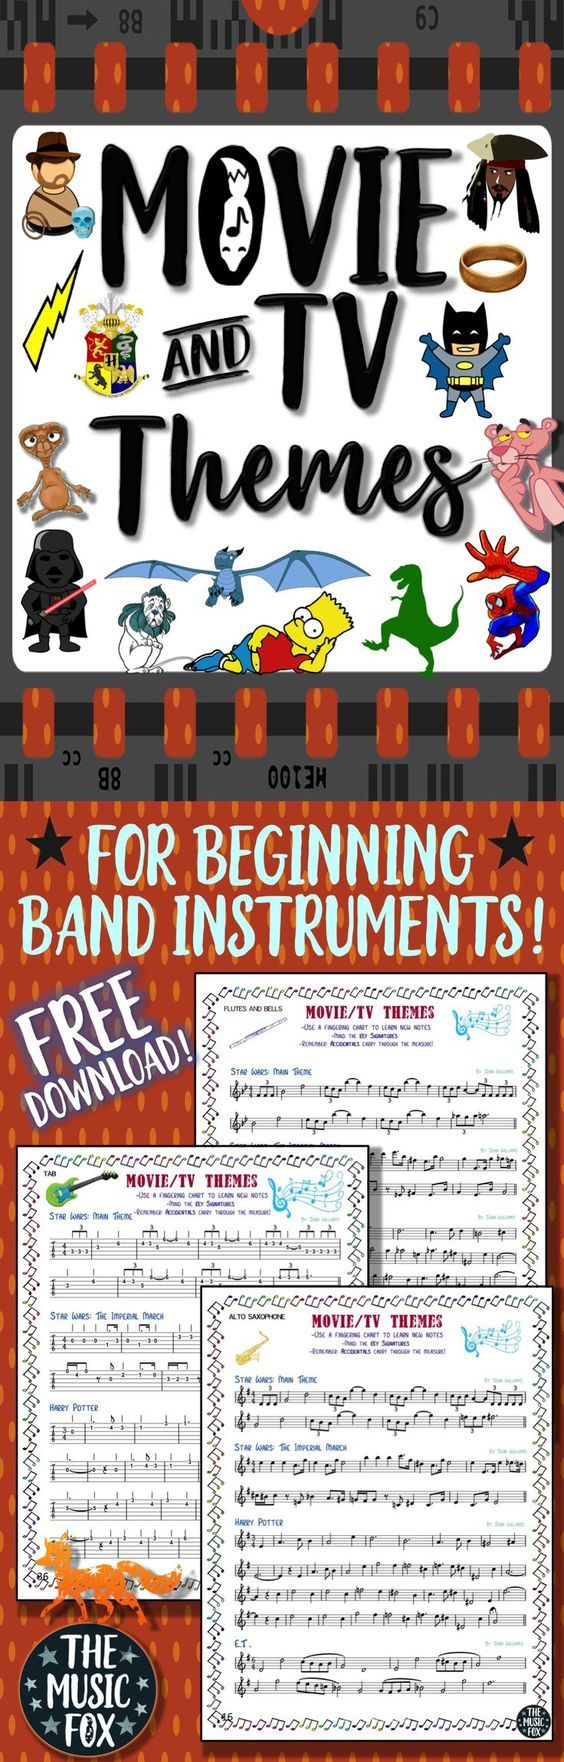 This free Movie & TV Themes packet includes melody excerpts from Star Wars, Harry Potter, How to Train Your Dragon, The Simpsons, The Pink Panther, Lord of the Rings, Spider-man, Batman, E.T., Indiana Jones, The Wizard of Oz, The Pirates of the Caribbean, and Jurassic Park. They are arranged for flutes, bells, tenor saxophone, alto saxophone, clarinet in Bb, trumpet, French horn and guitar tabs.